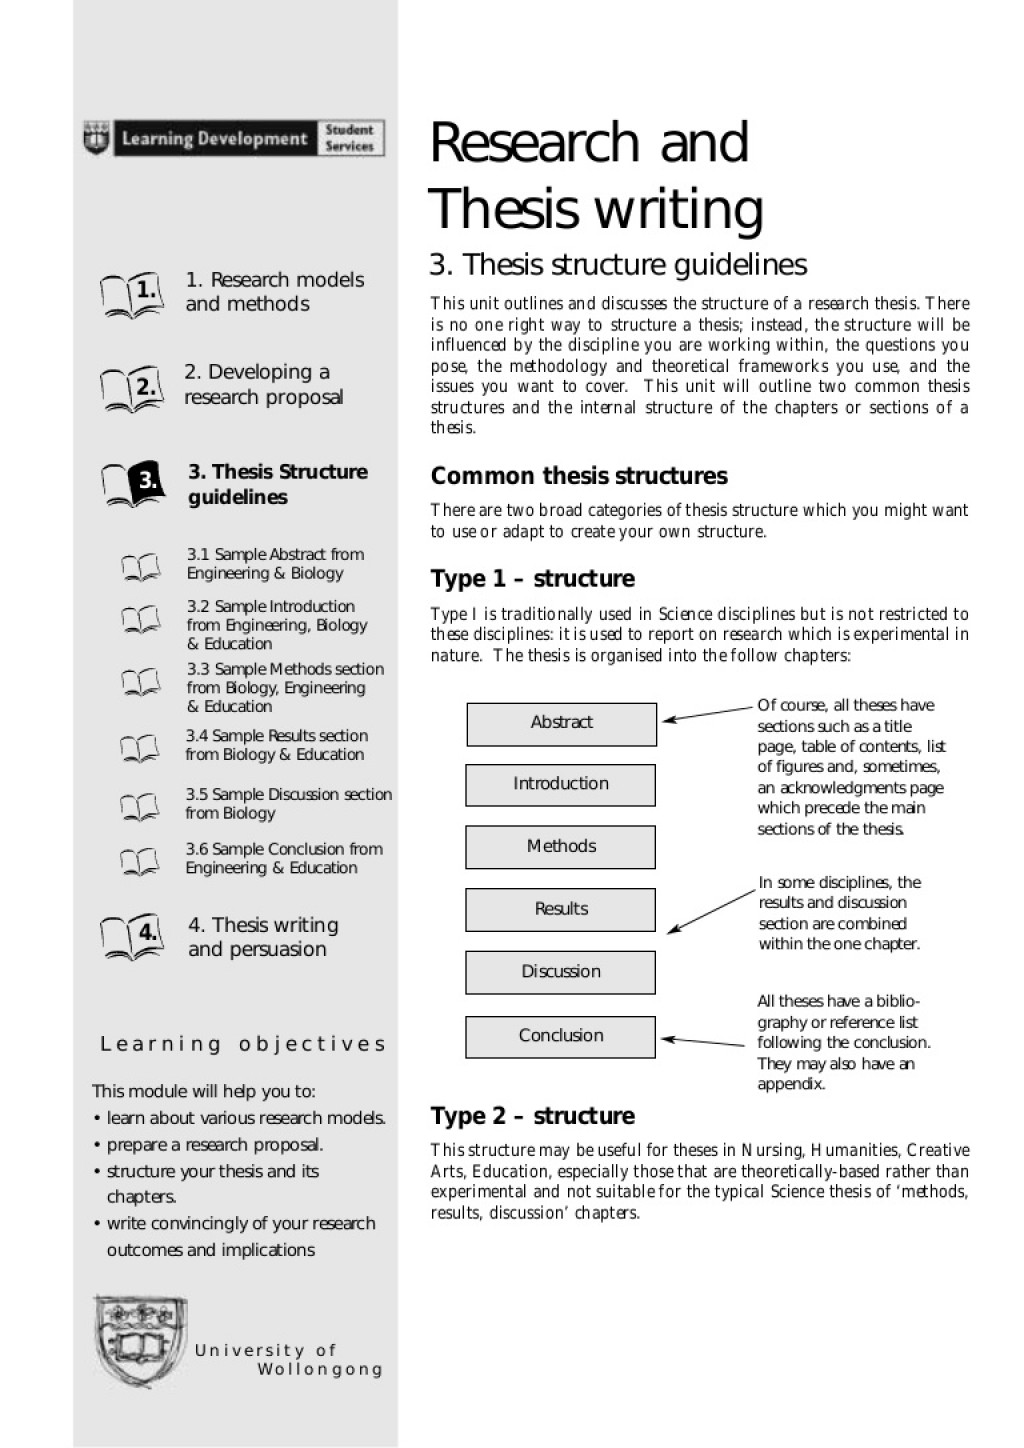 002 Research Paper Researchtheseswriting Phpapp01 Thumbnail Proposal For Fascinating Slideshare Writing A How To Write Large